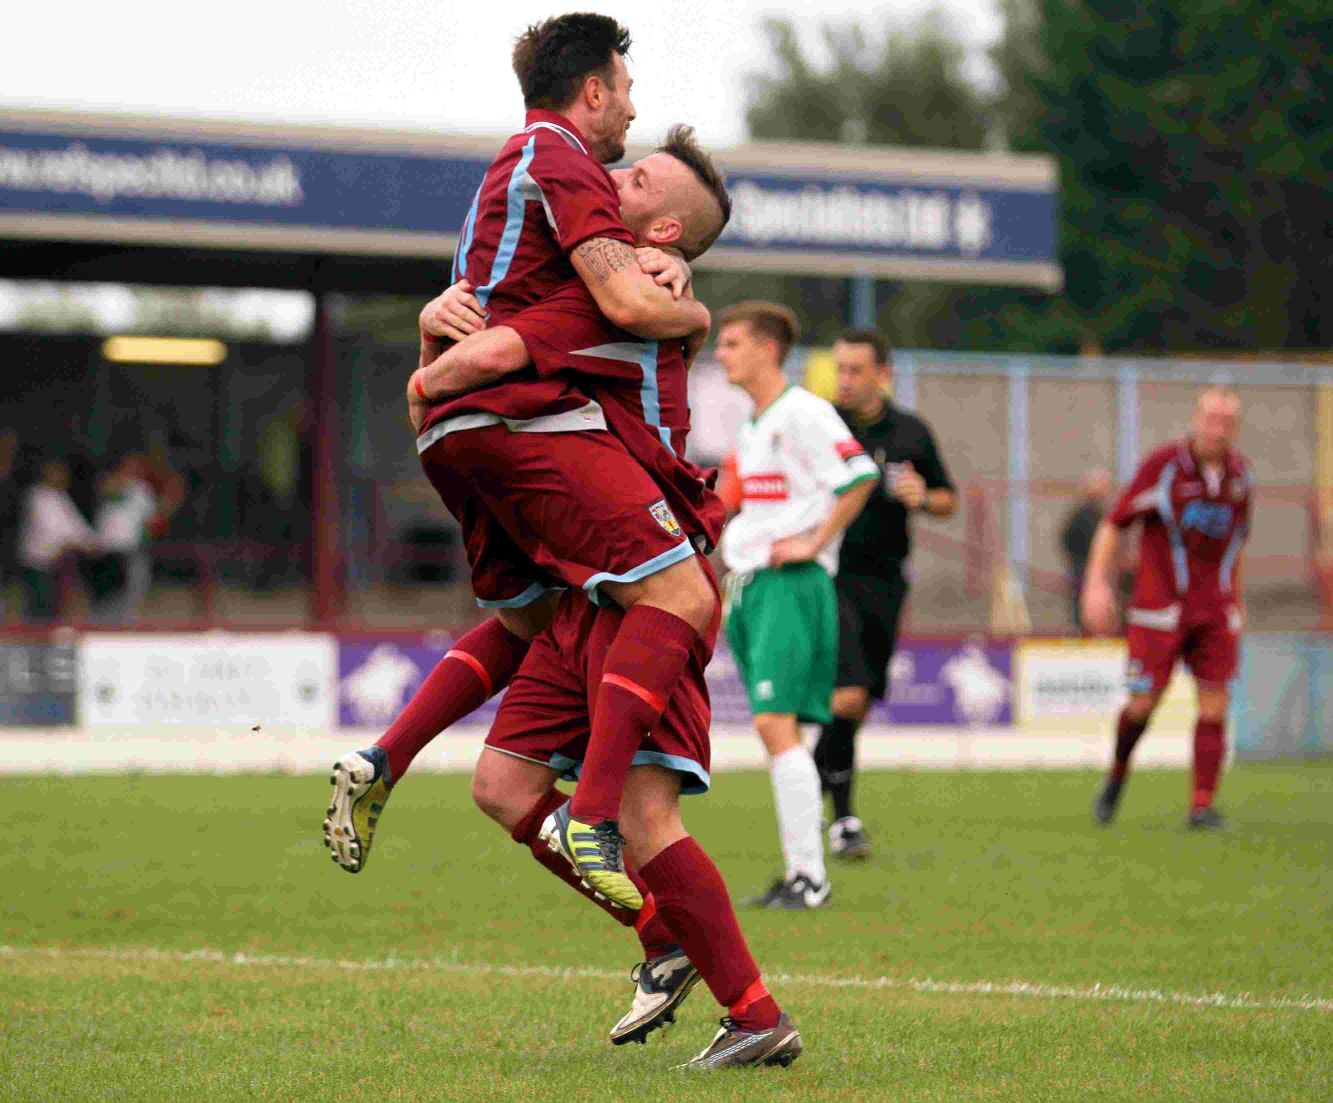 DYNAMIC DUO: Ben Joyce and Stewart Yetton will spearhead the Terras against Poole on Thursday